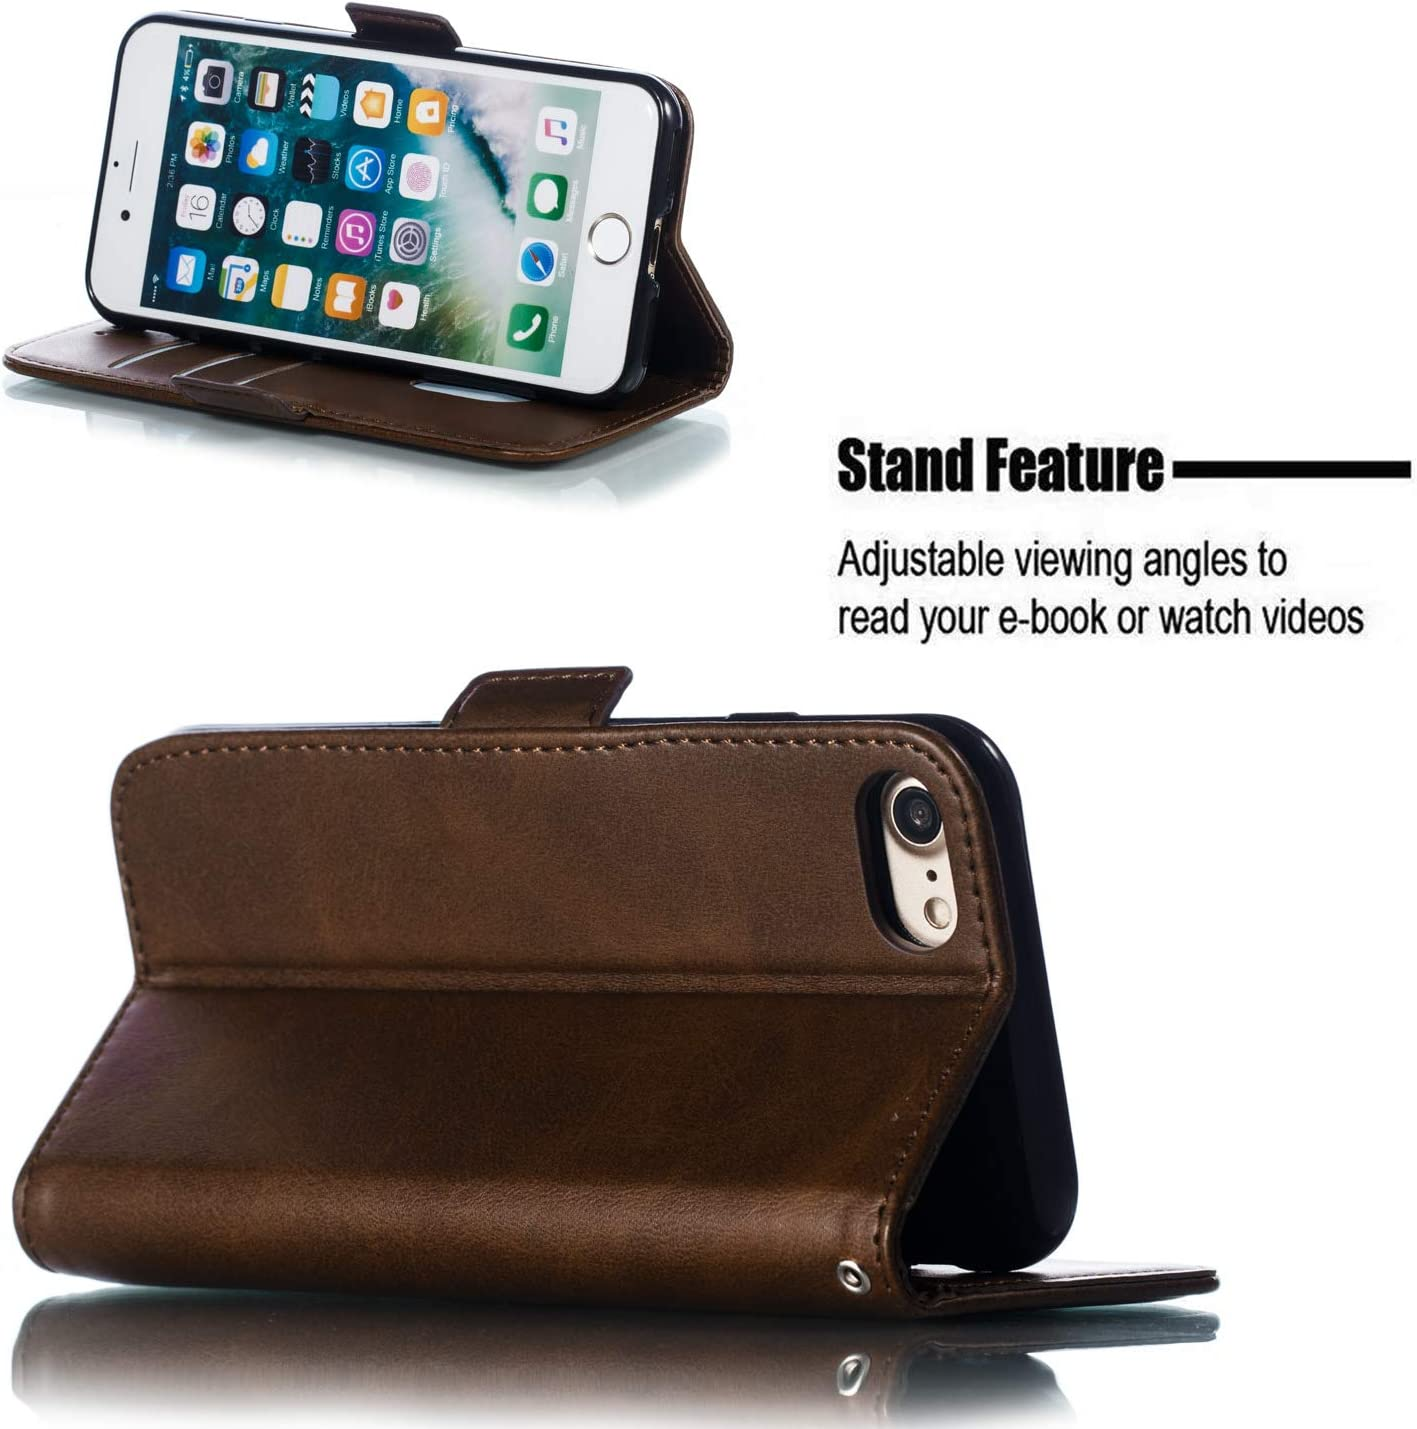 iPhone8 Shockproof Flip Case Cover for Apple iPhone7 iPhone 7 with Stand Feature Card Holder Magnetic Closure Lomogo Leather Wallet Case for iPhone 8 LOYTE010025 Yellow